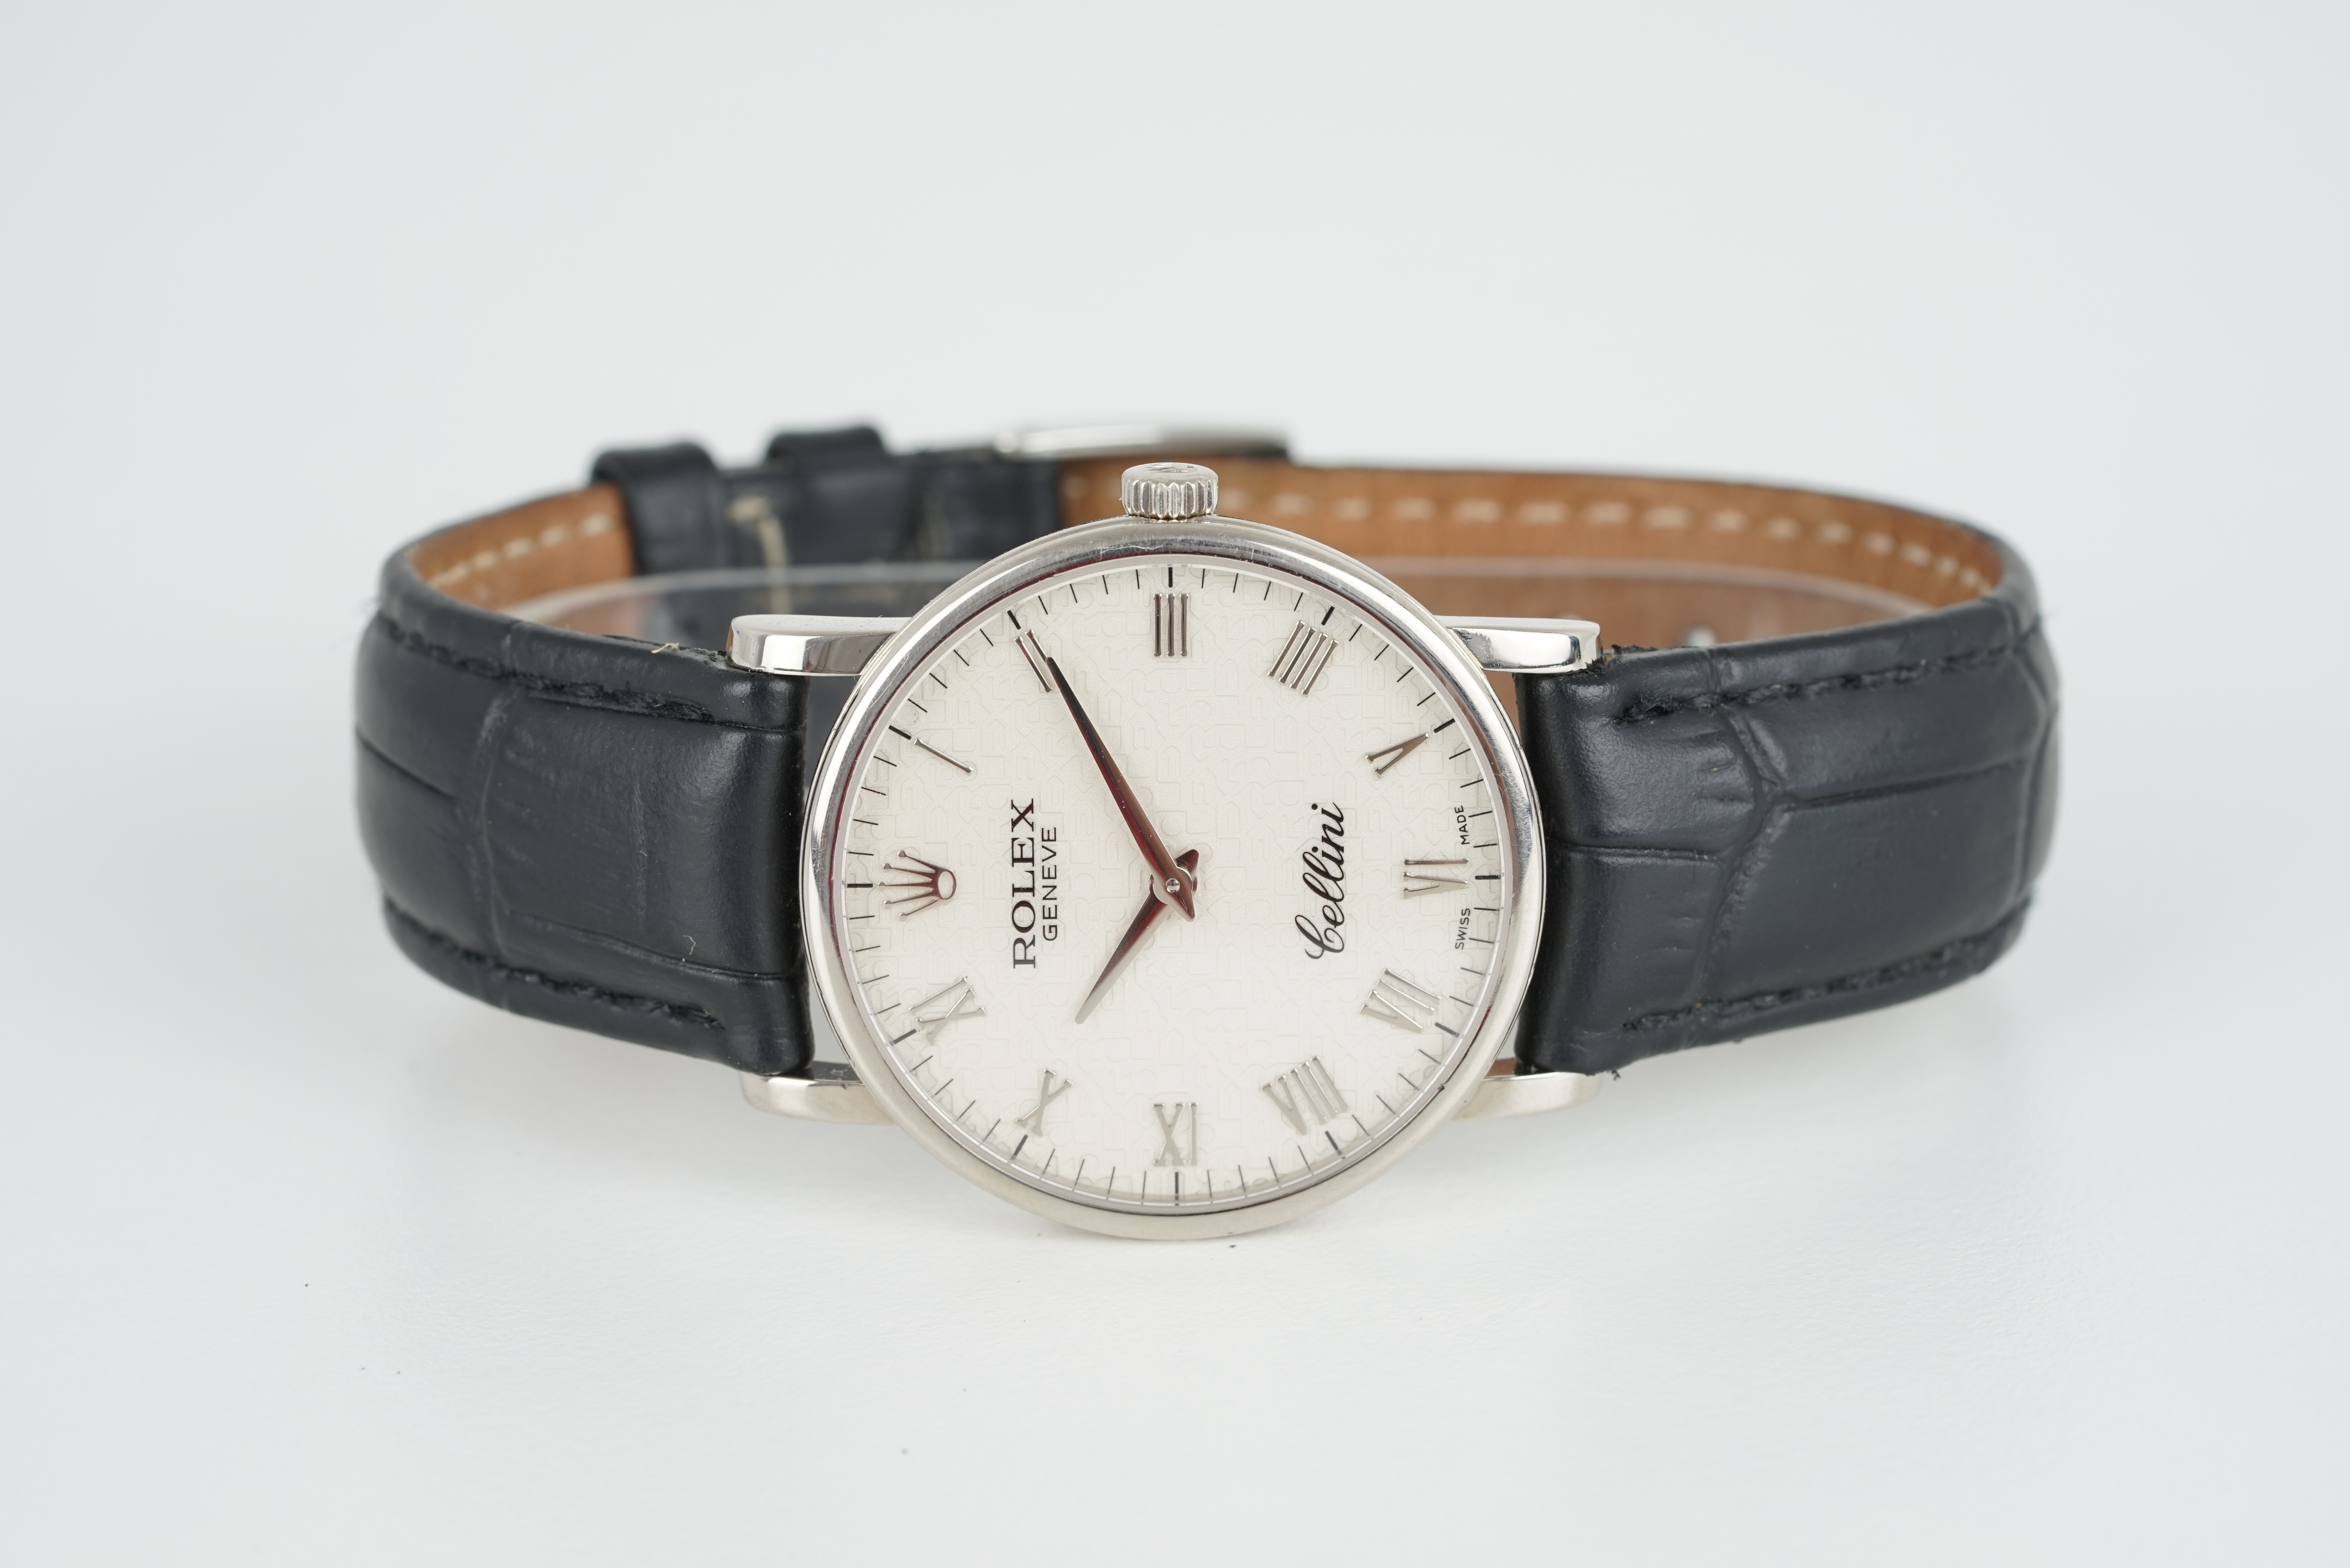 GENTLEMENS ROLEX CELLINI 18CT WHITE GOLD WRISTWATCH, circular white rolex repeat dial with roman